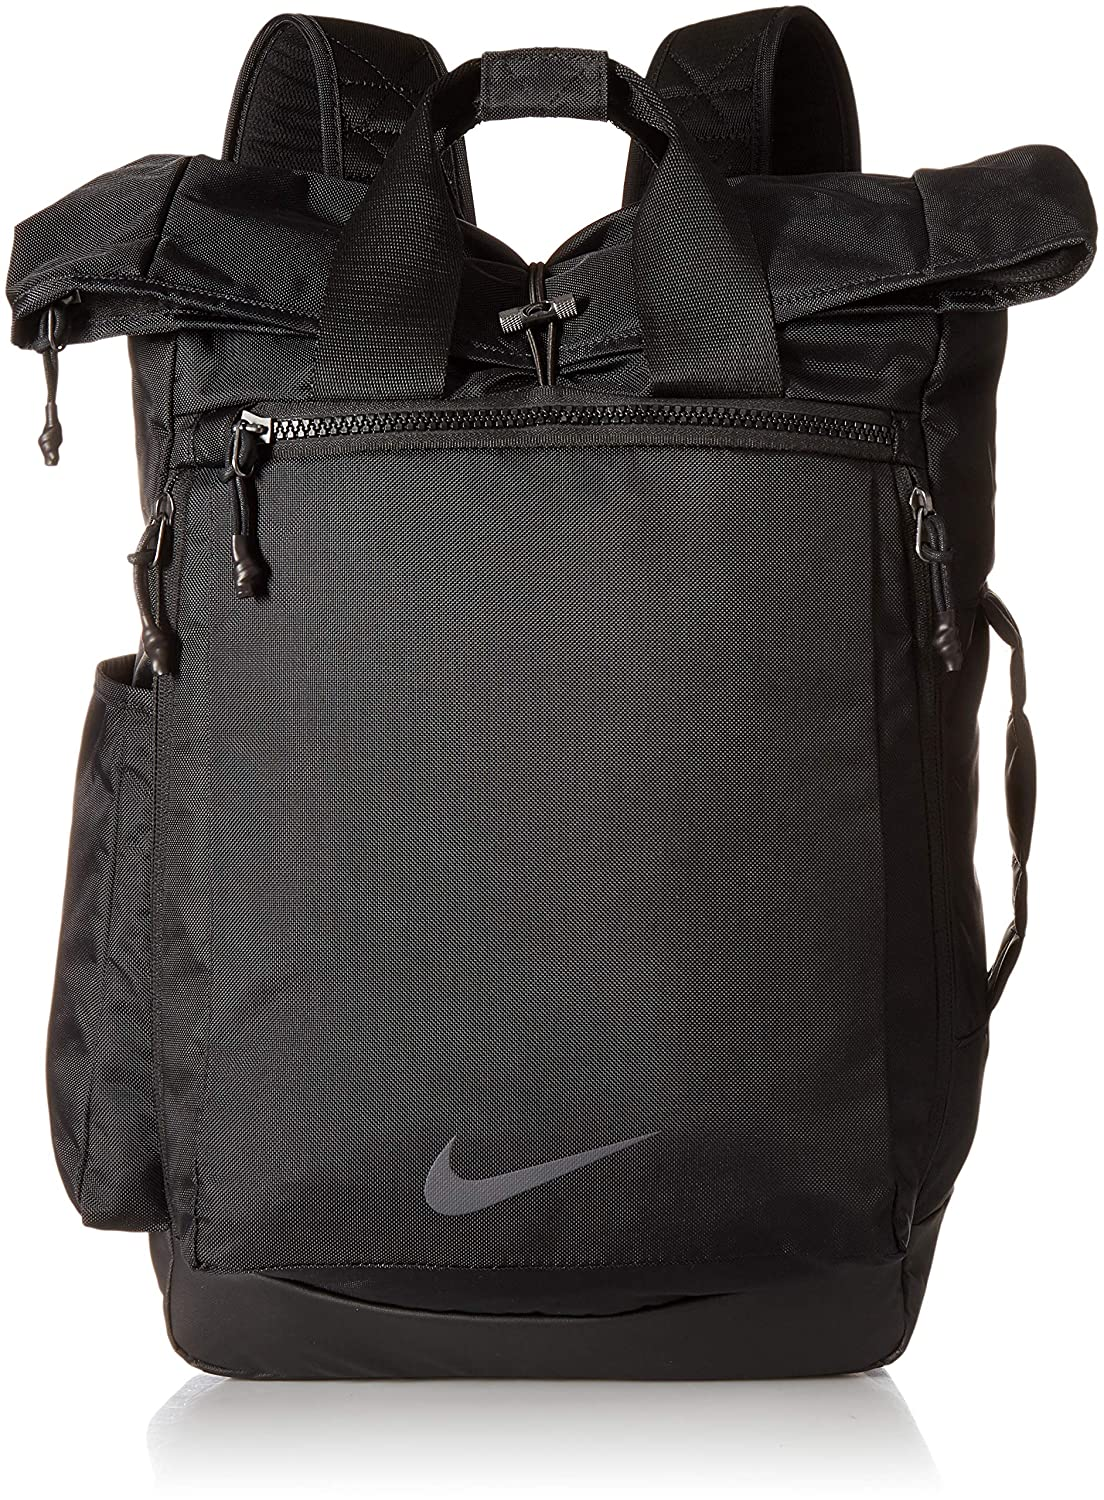 cc15f46f00454 Amazon.com: Nike mens NK VPR ENRGY BKPK - 2.0 BA5538-010 -  BLACK/BLACK/BLACK: Five Twelve Unlimited